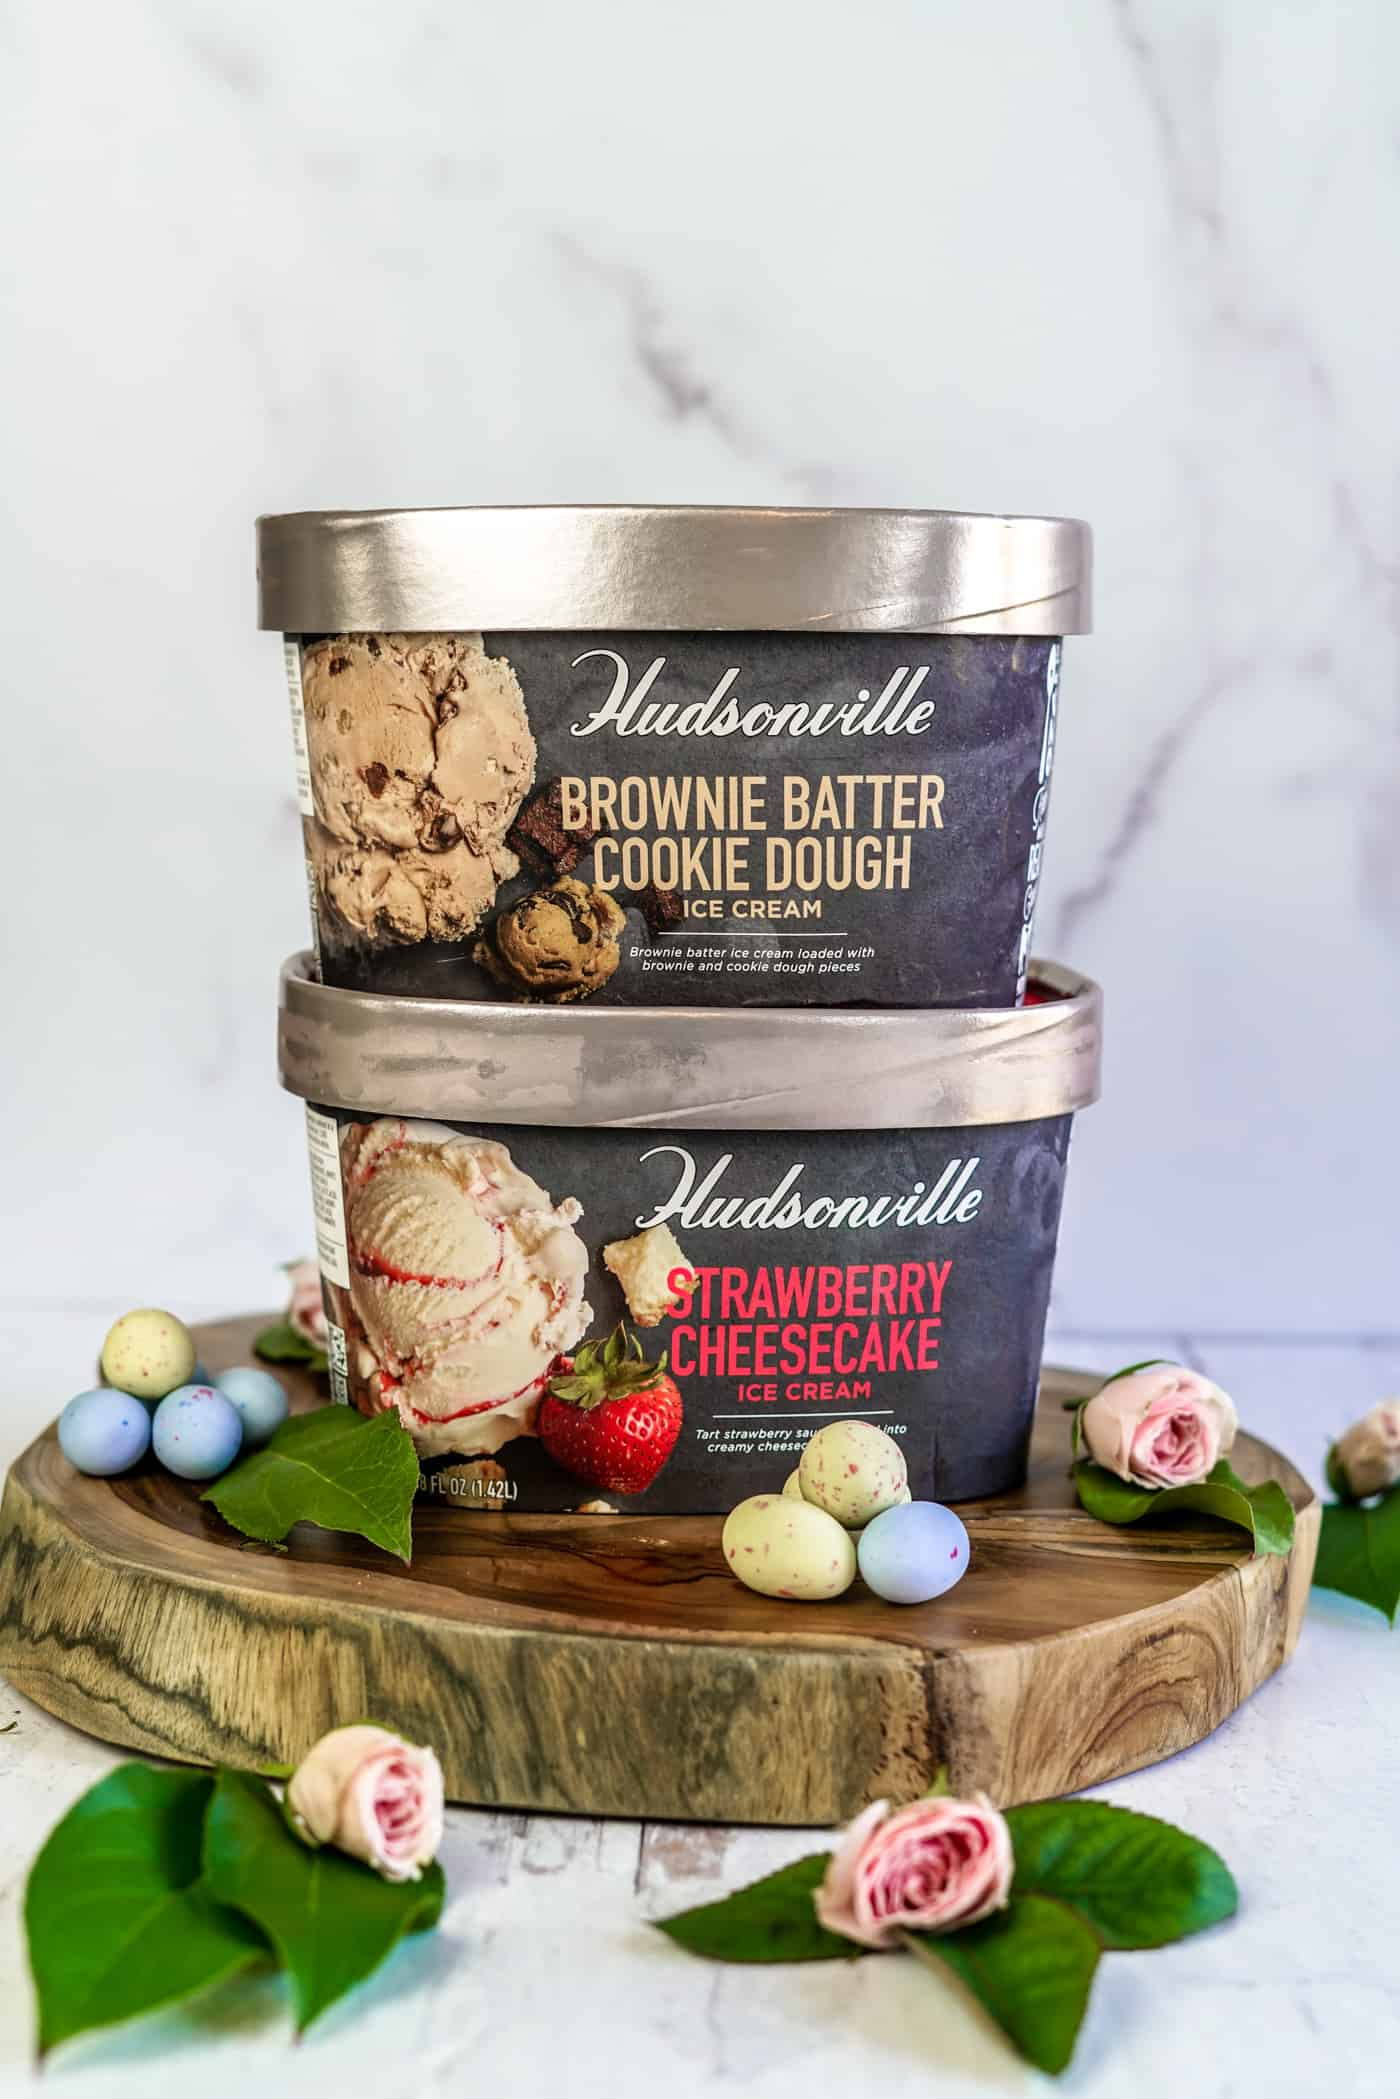 Two Hudsonville Ice Cream cartons on a platter